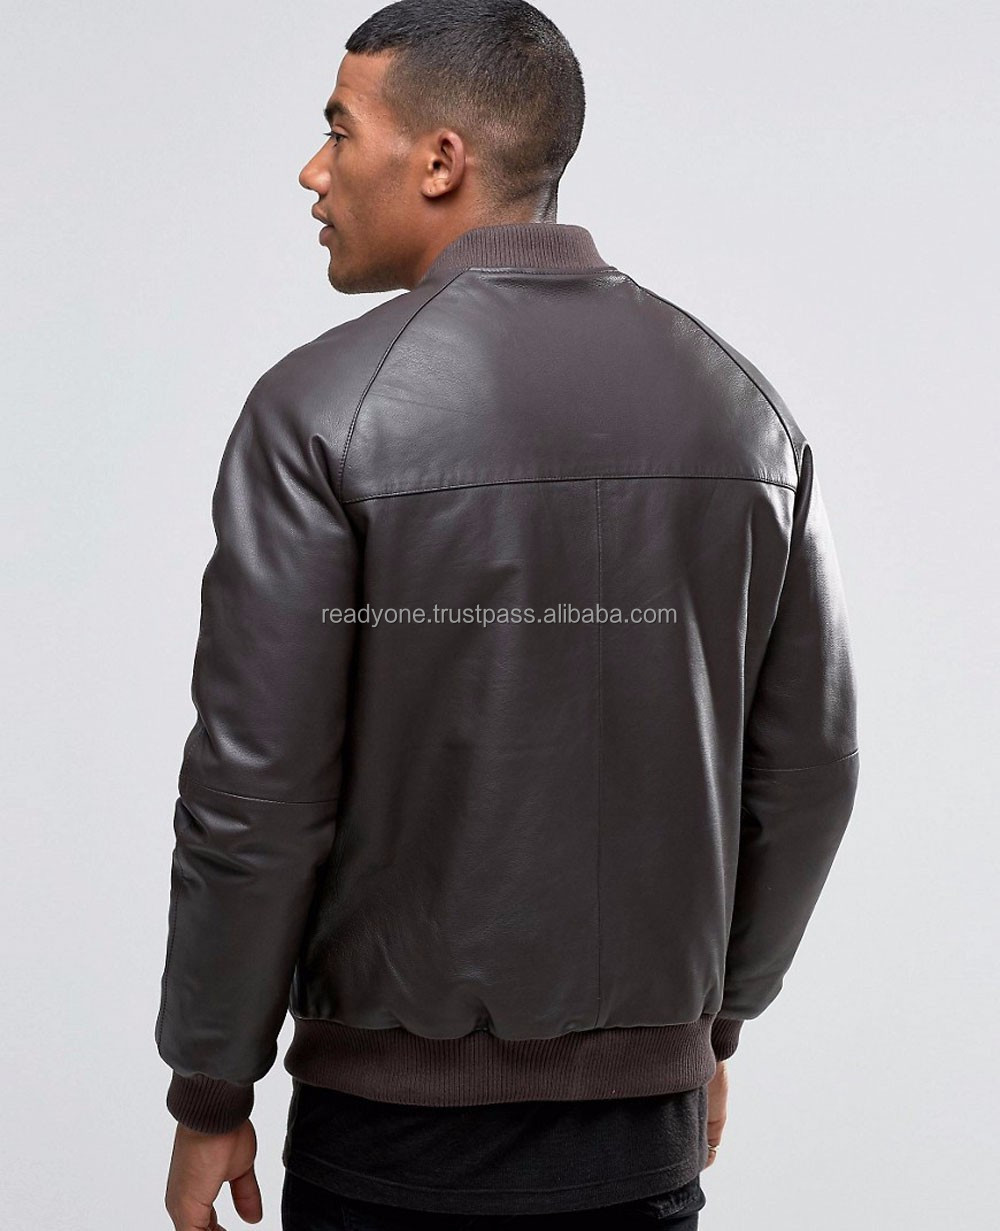 New fashion Slim Fit Men Leather Jacket / Pakistan Leather Jackets Online